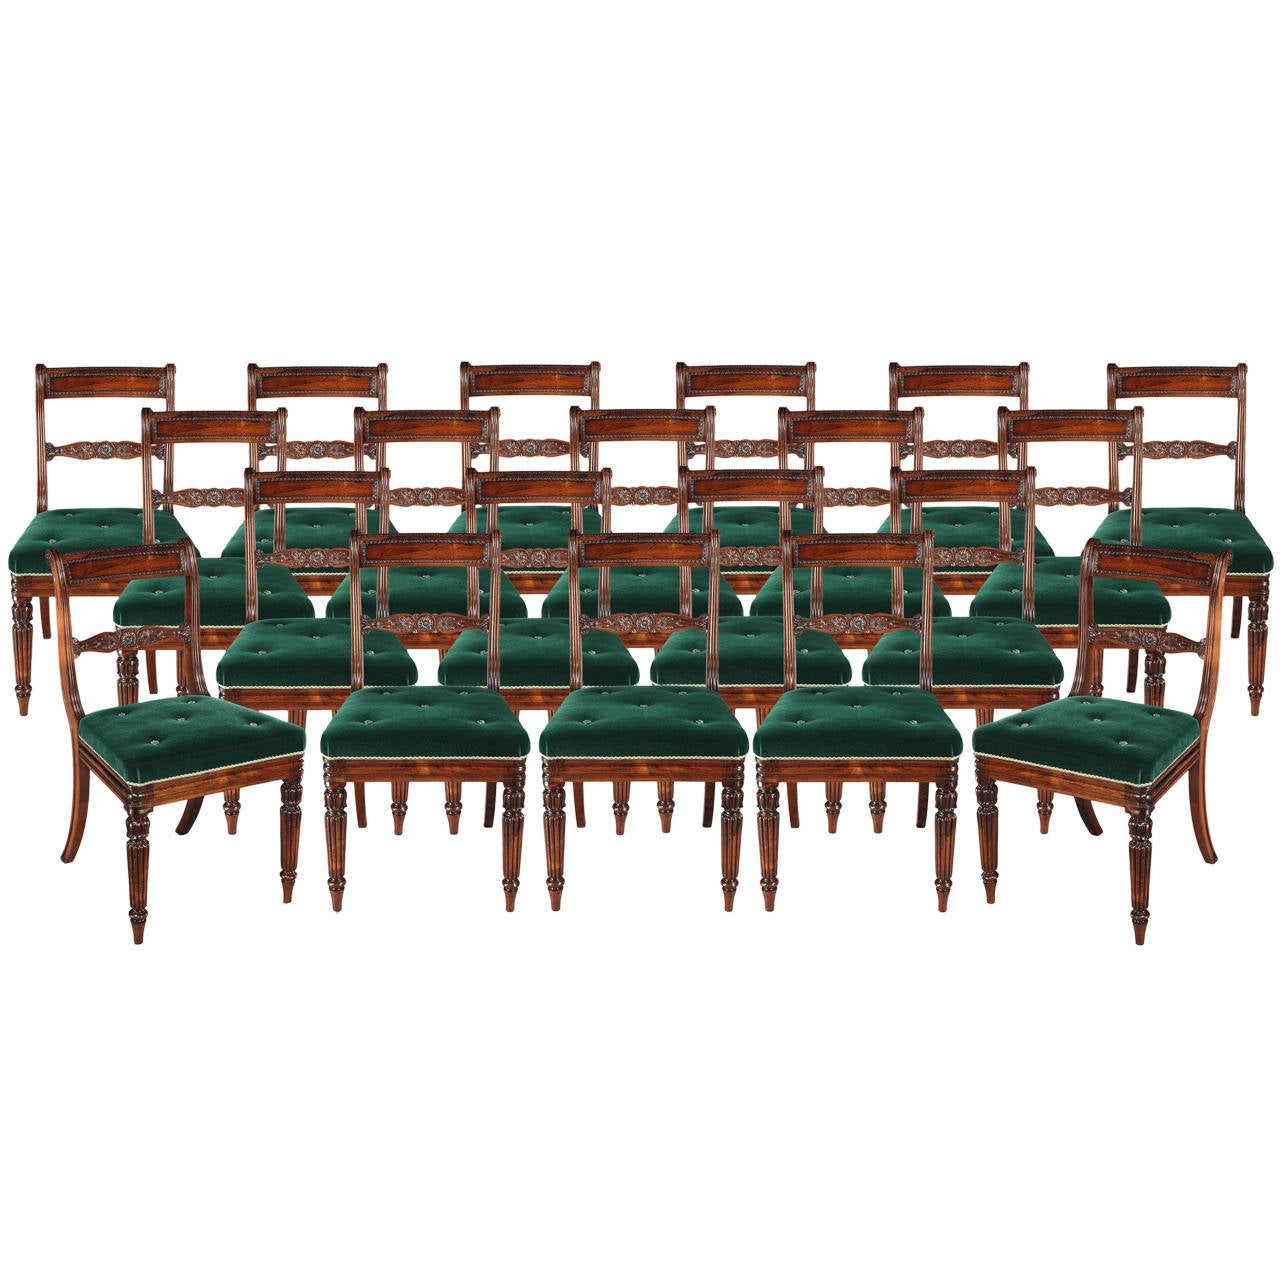 Set of 20 Regency Period Dining Chairs with Green Velvet Upholstery